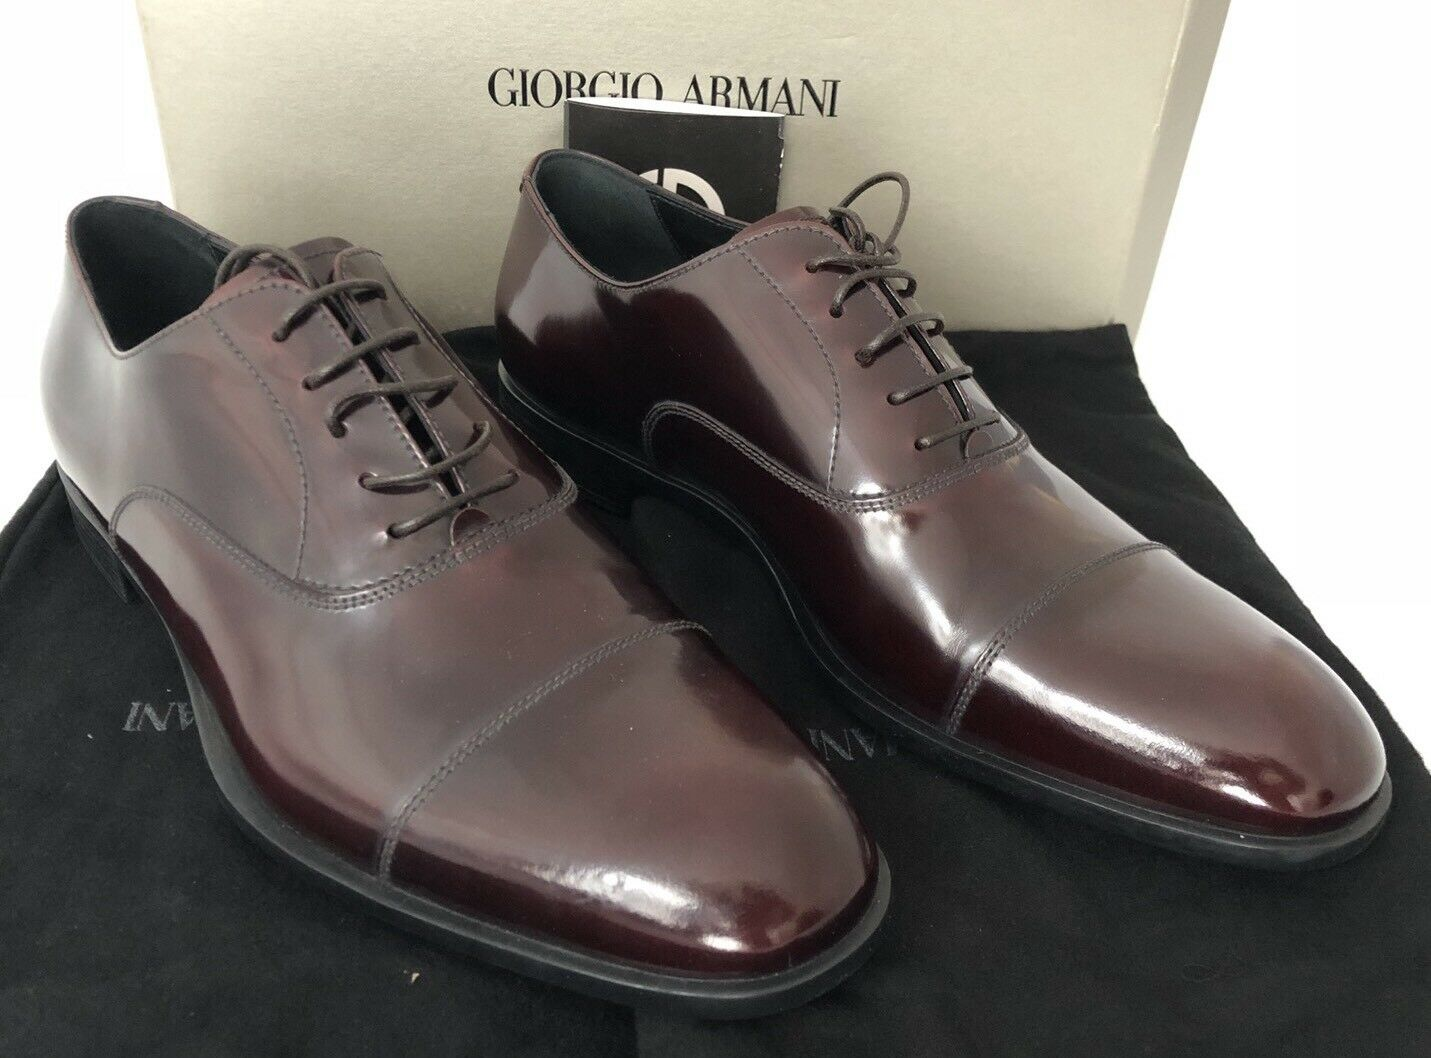 NIB  675 Giorgio Armani Pelle Uomo's Galaxy Brown Oxford Shoes 12.5   X2C455